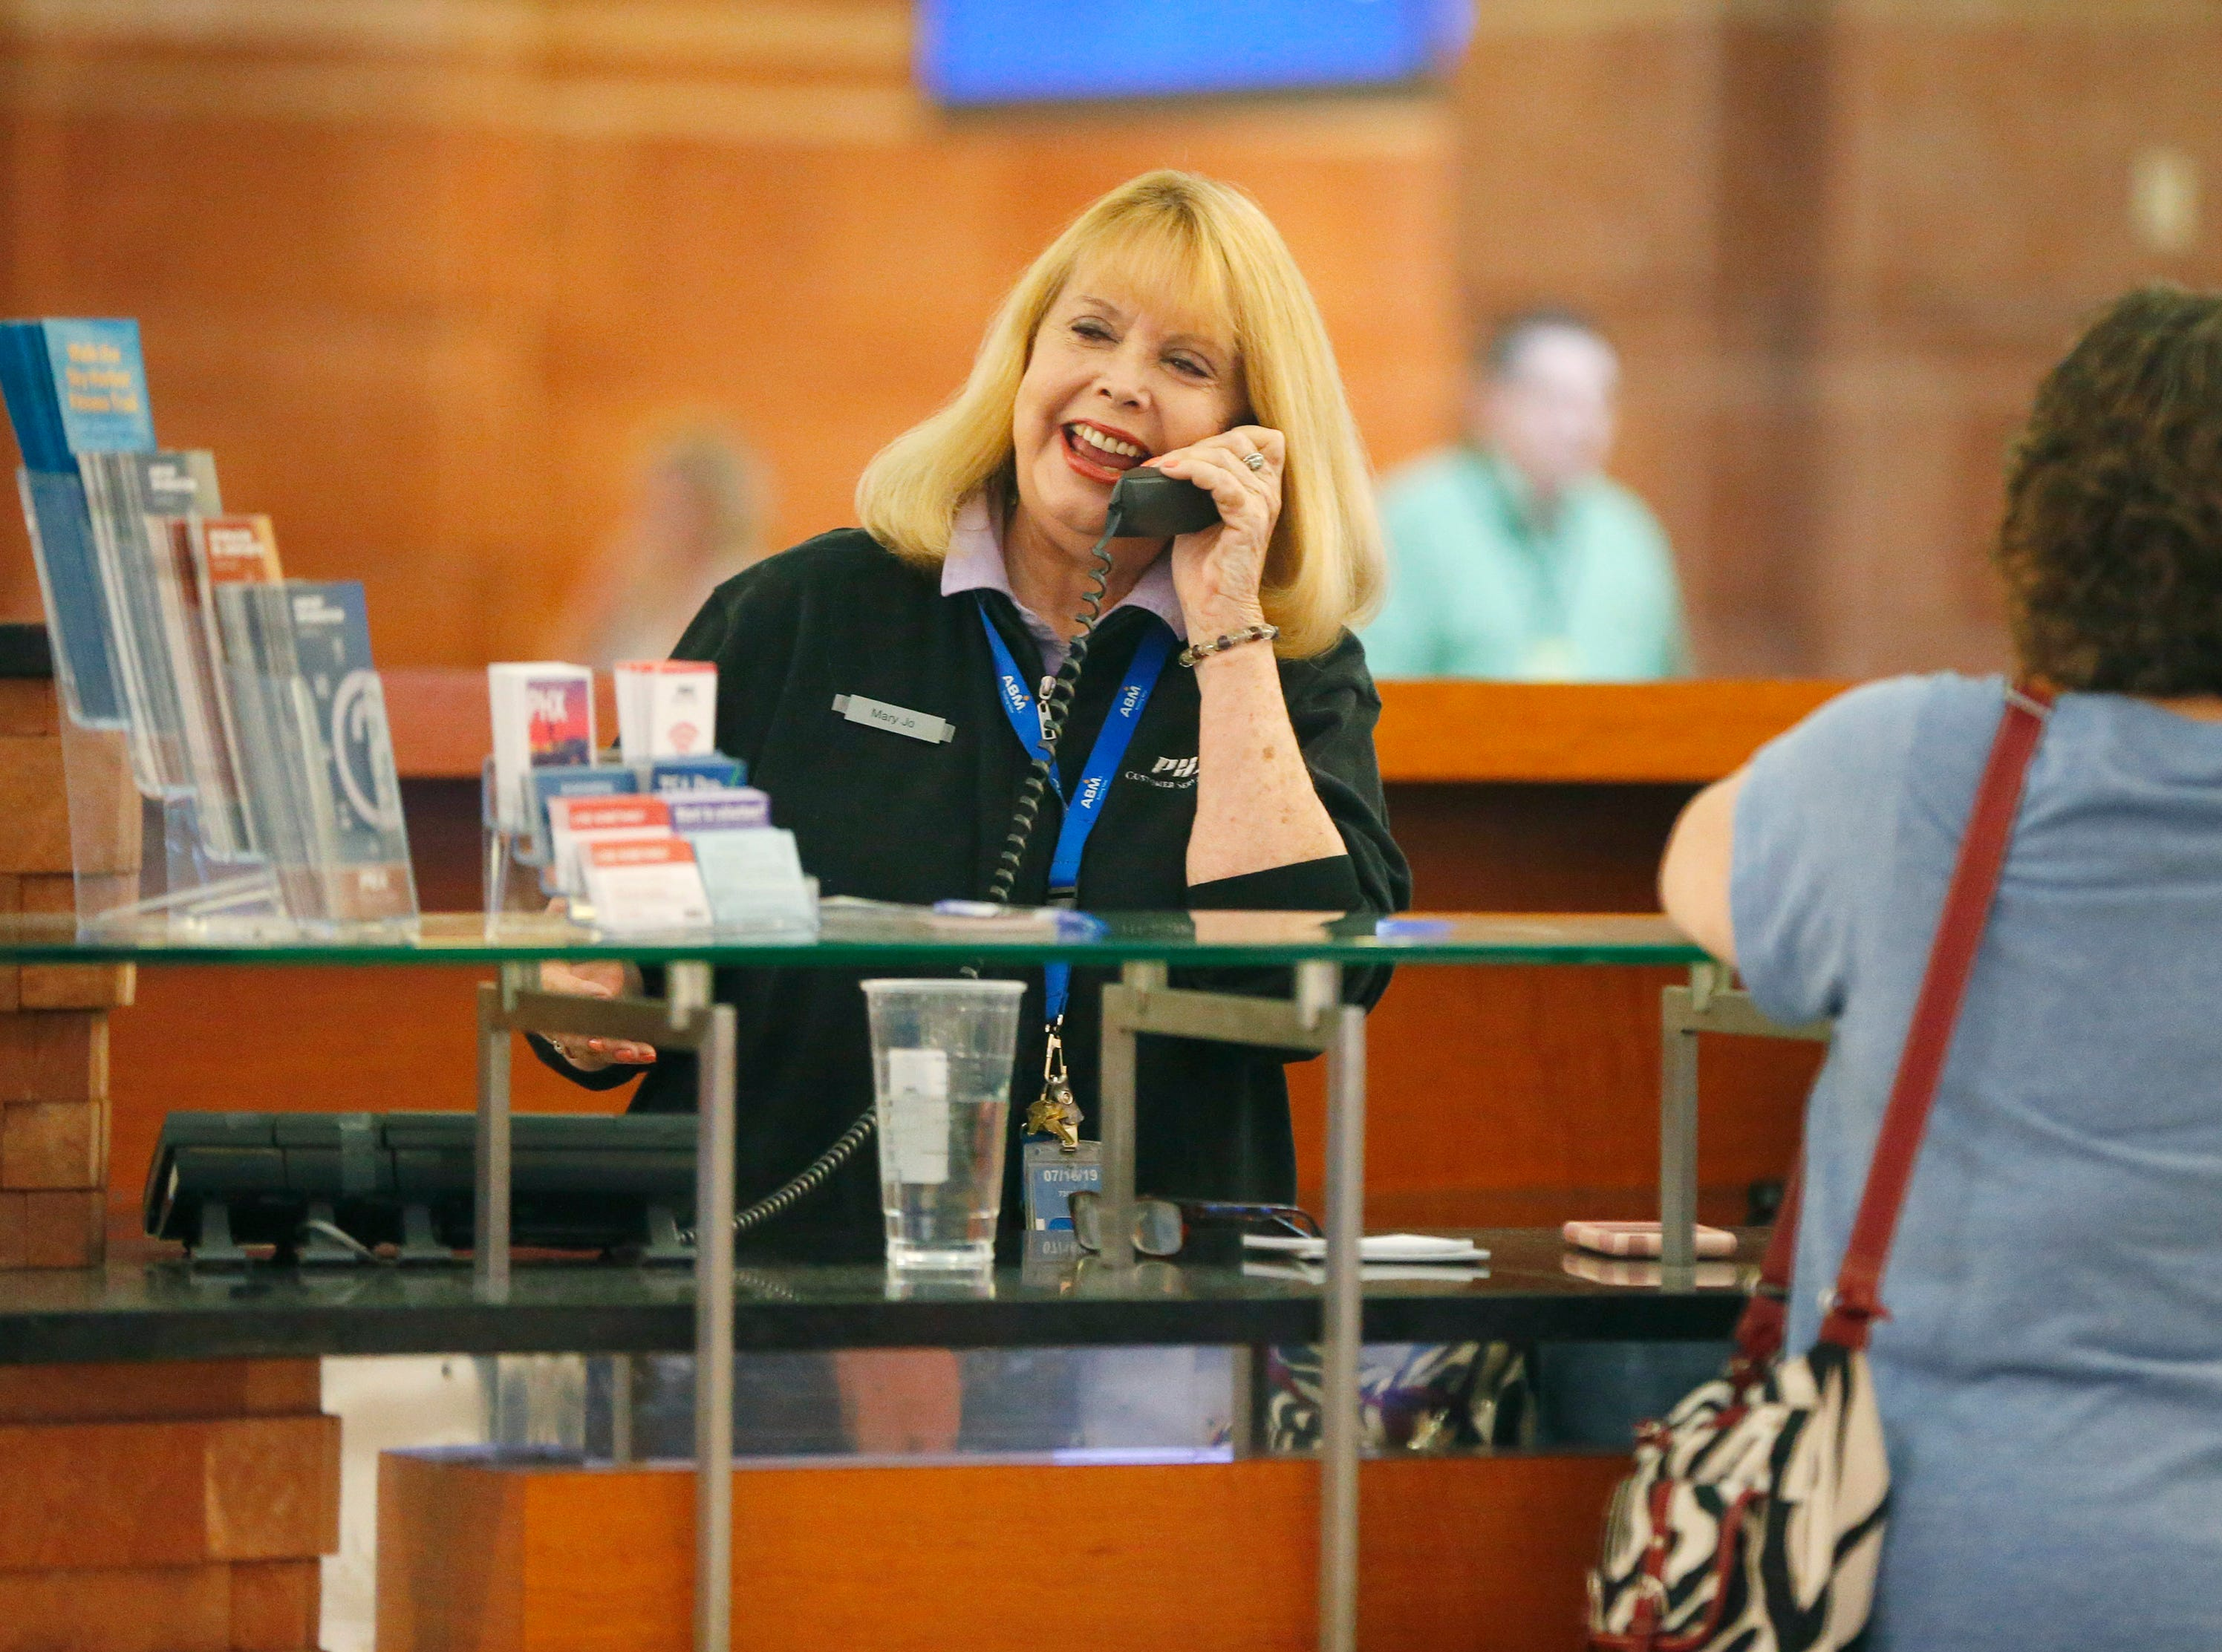 Mary Jo West helps Donna Rapp while working at the information desk at Phoenix Shy Harbor Airport on April 3, 2019. The first female news anchor in Arizona has been a volunteer at Terminal 4 for three months.